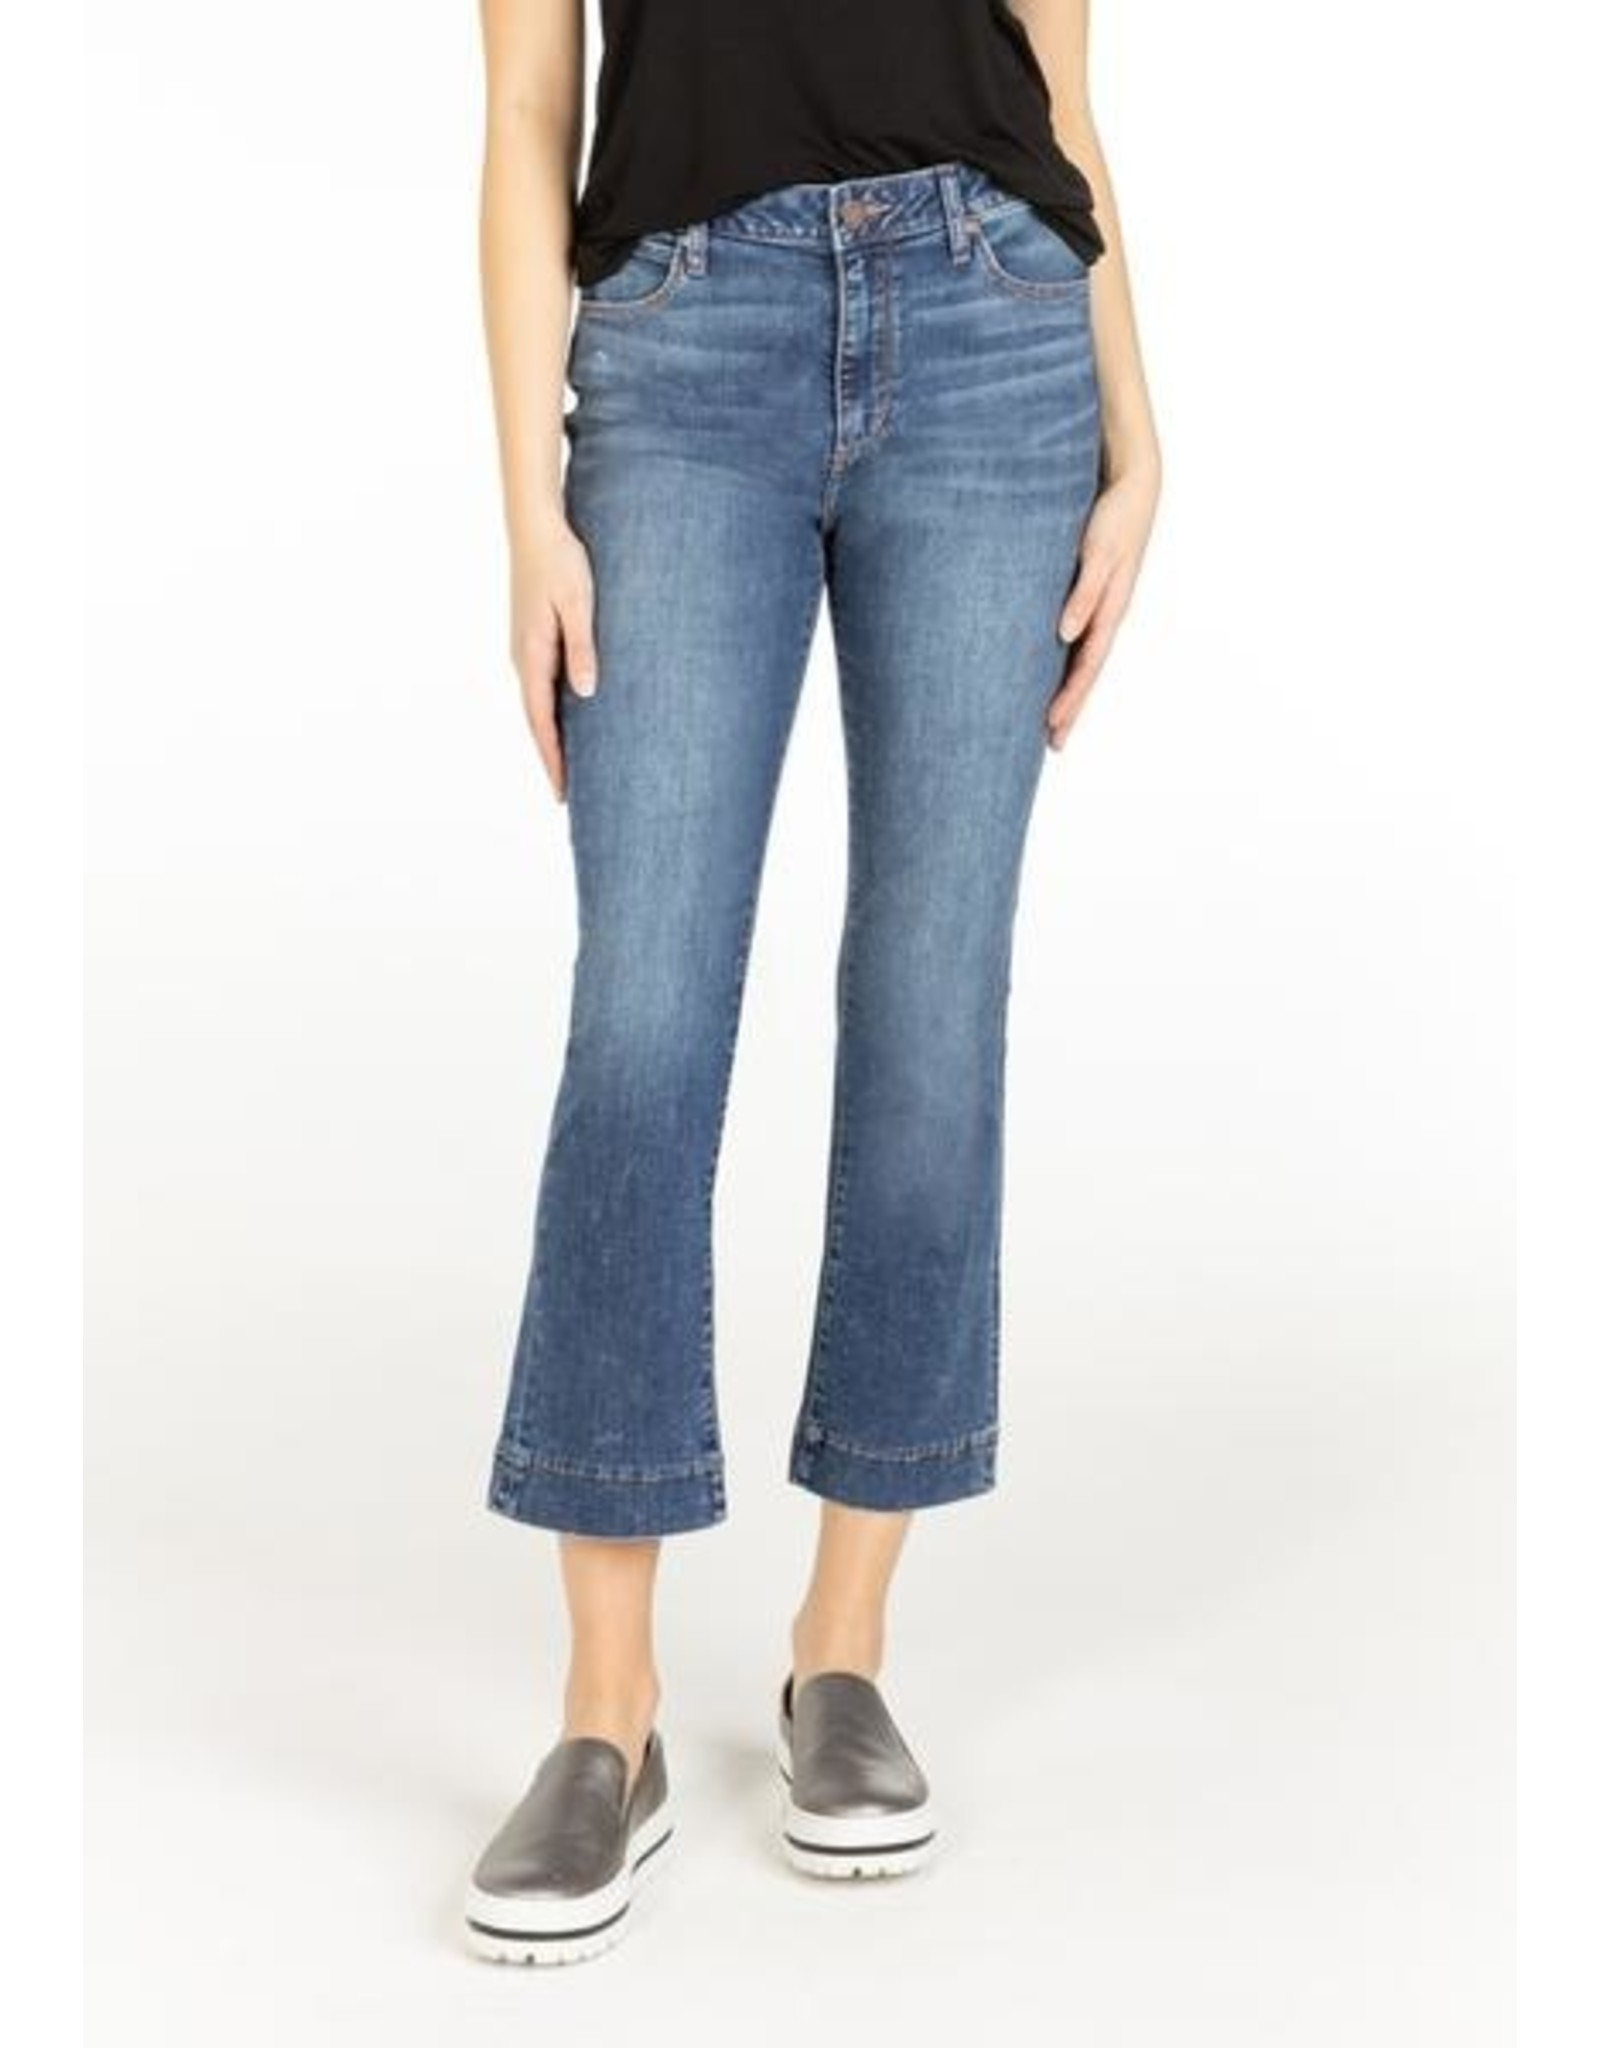 Articles of Society LONDON HIGH RISE CROP DENIM